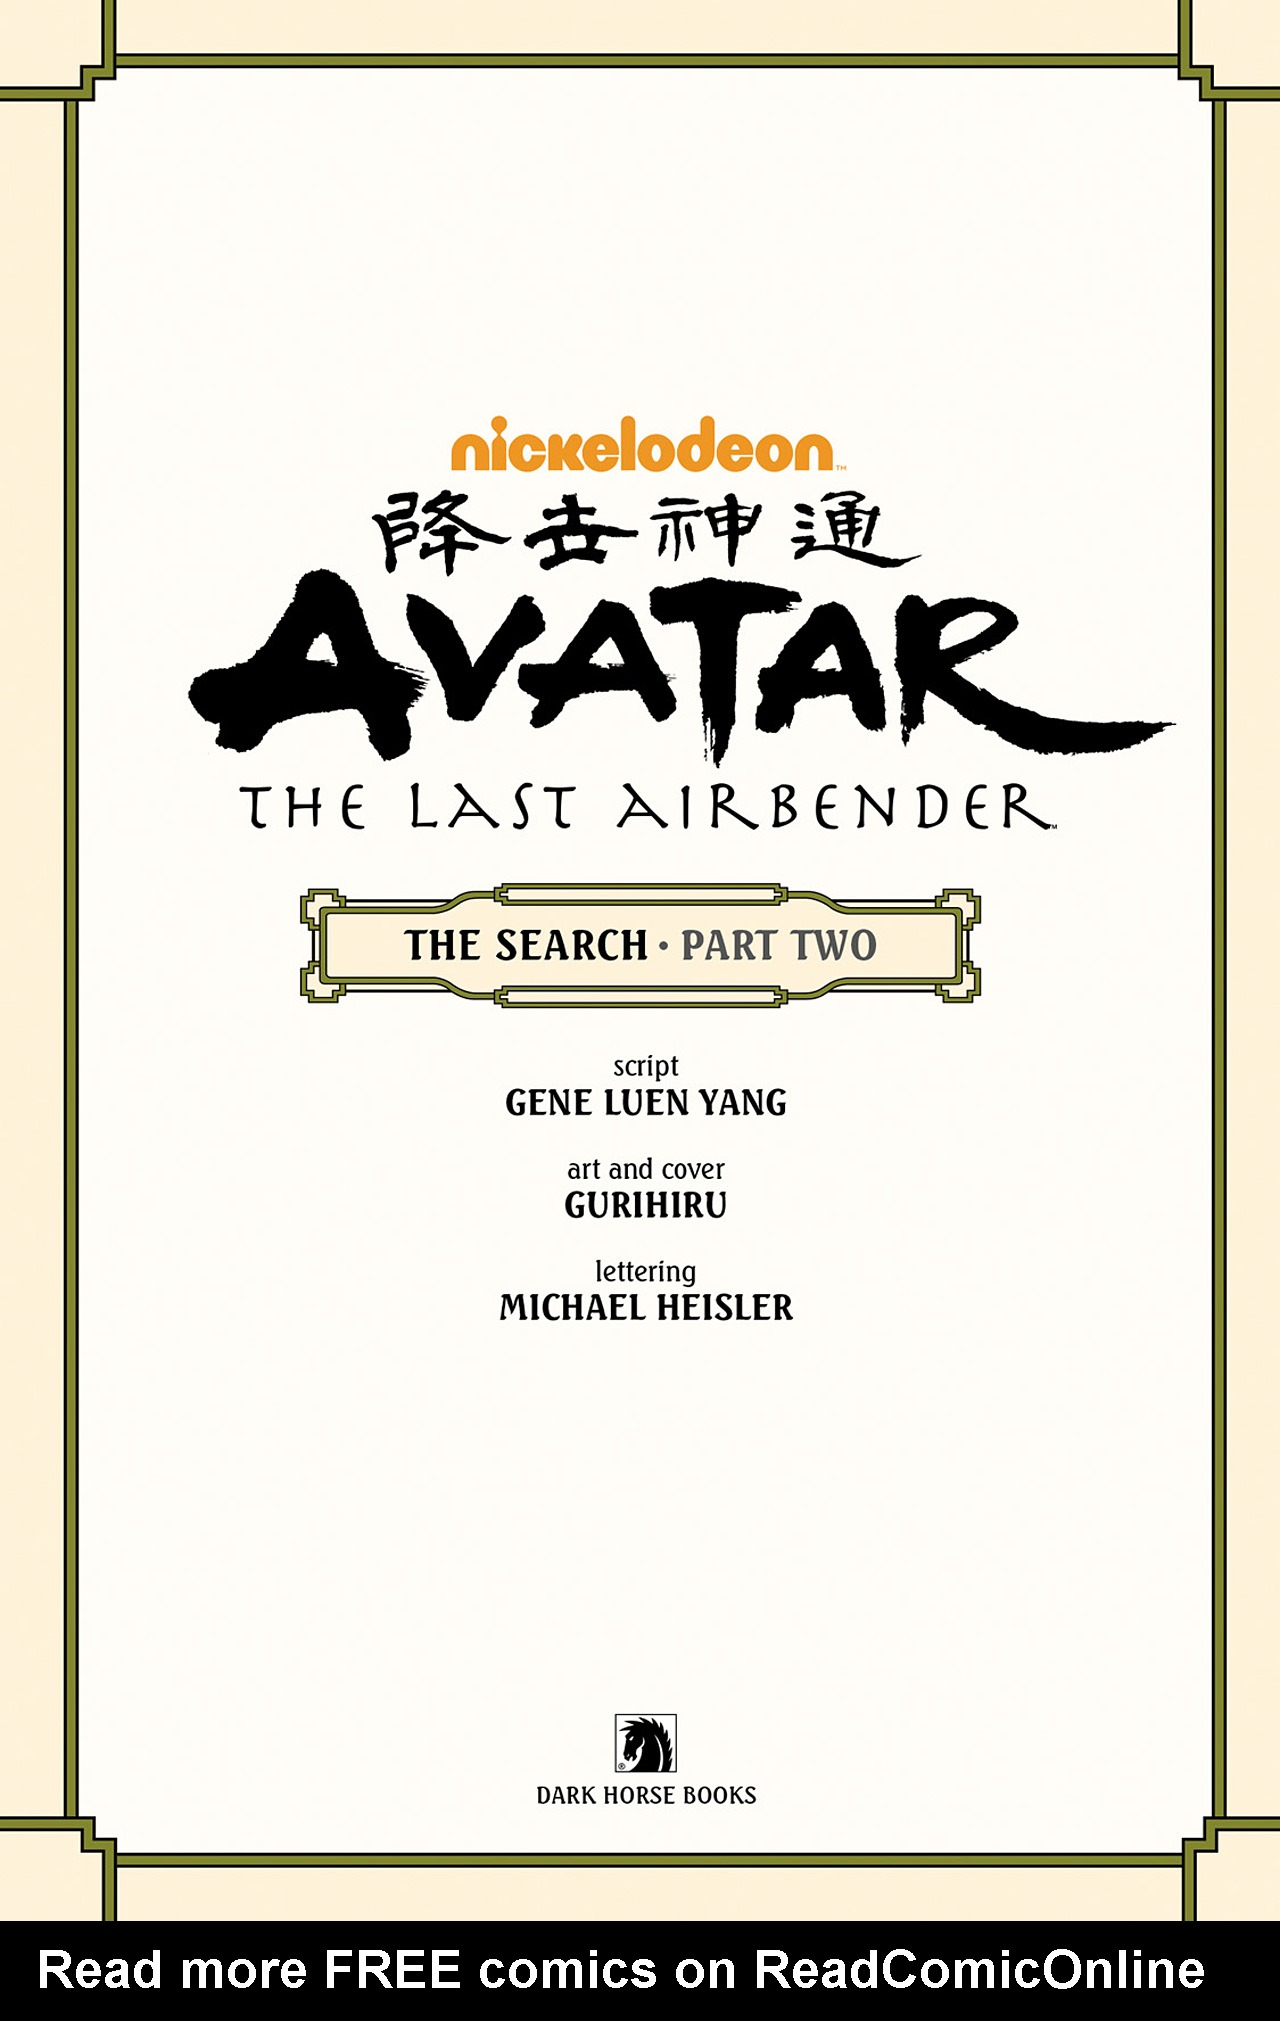 Read online Nickelodeon Avatar: The Last Airbender - The Search comic -  Issue # Part 2 - 4